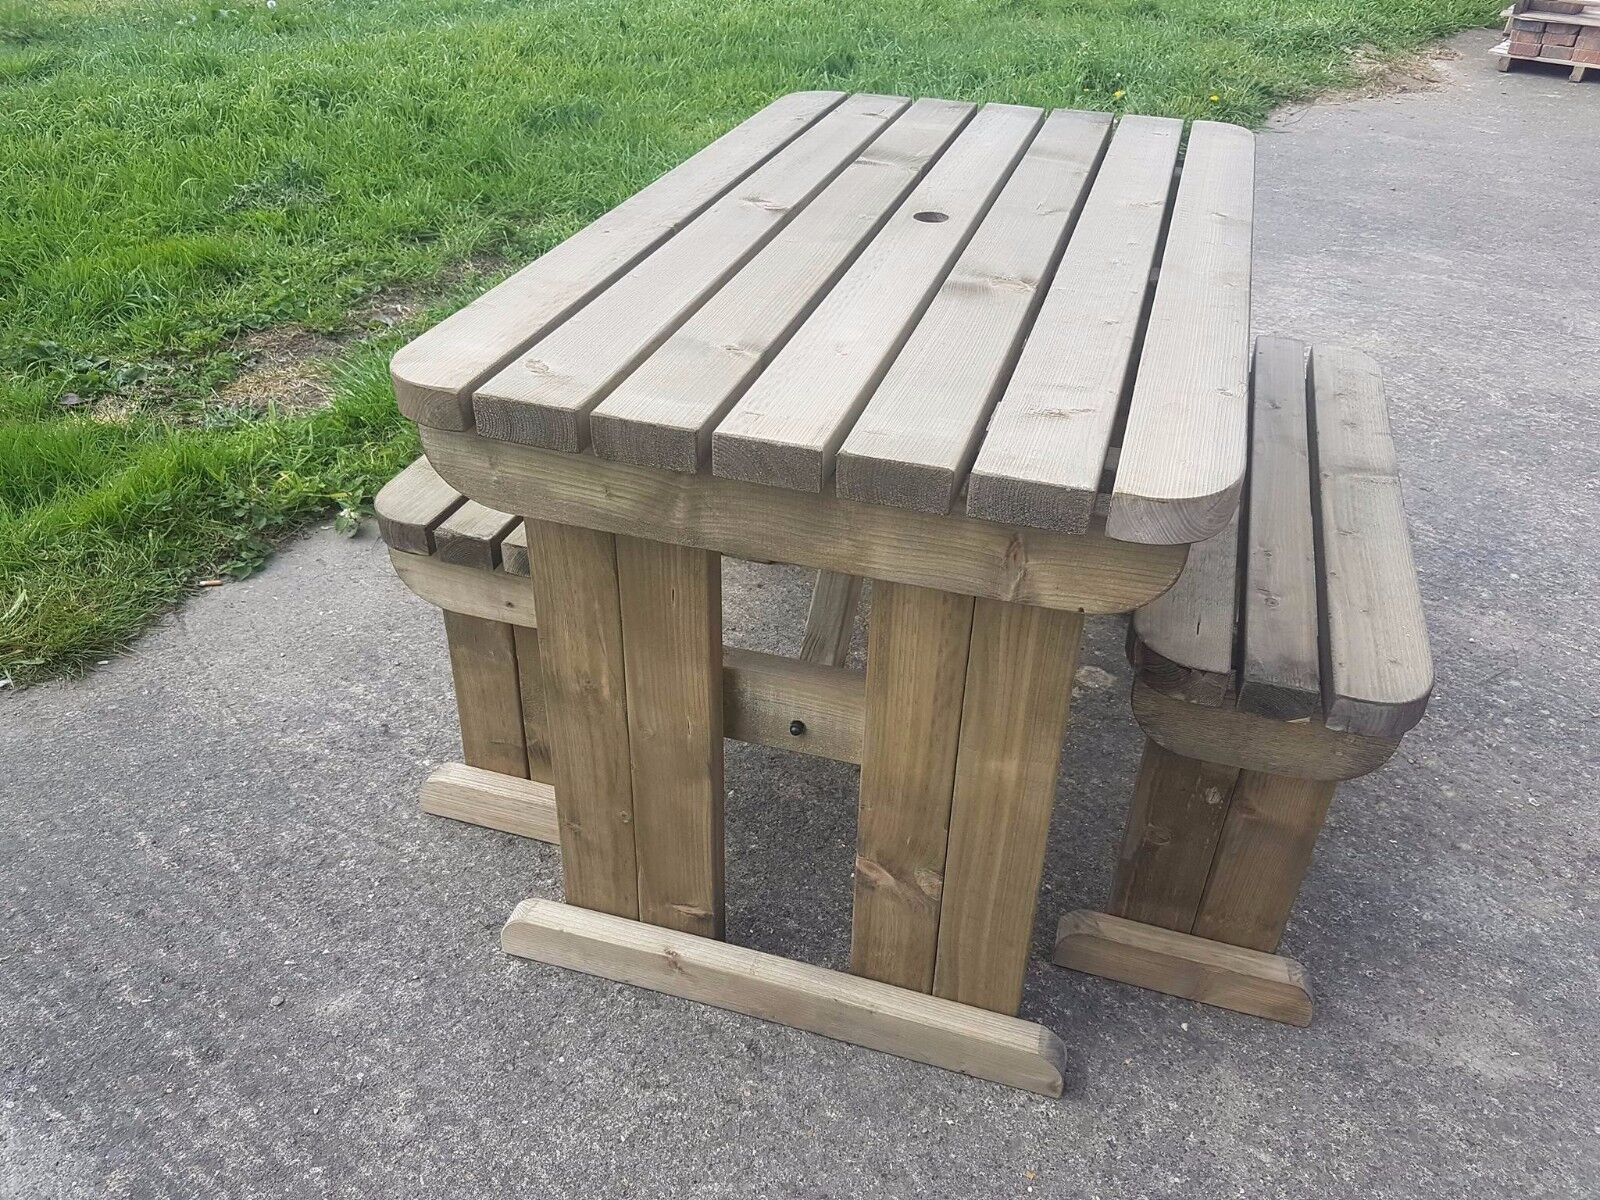 Garden Furniture - Picnic Table and Bench Set Wooden Outdoor Garden Furniture, Yews Compact Rounded